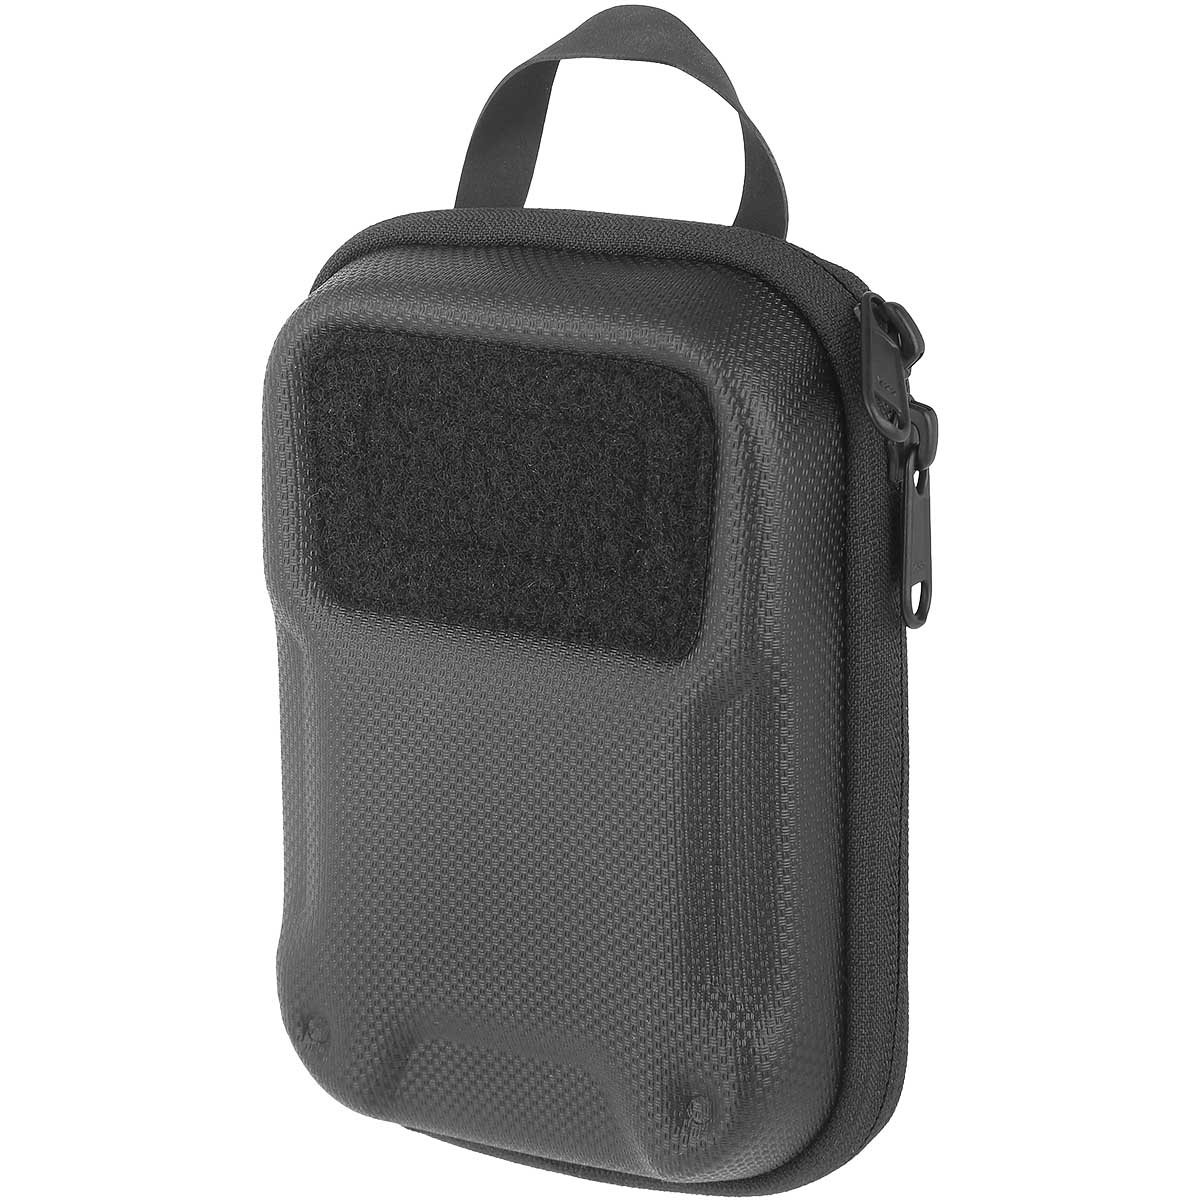 Maxpedition AGR Mini Organizer Hex Ripstop Utility Pouch Army Shell Pocket Black